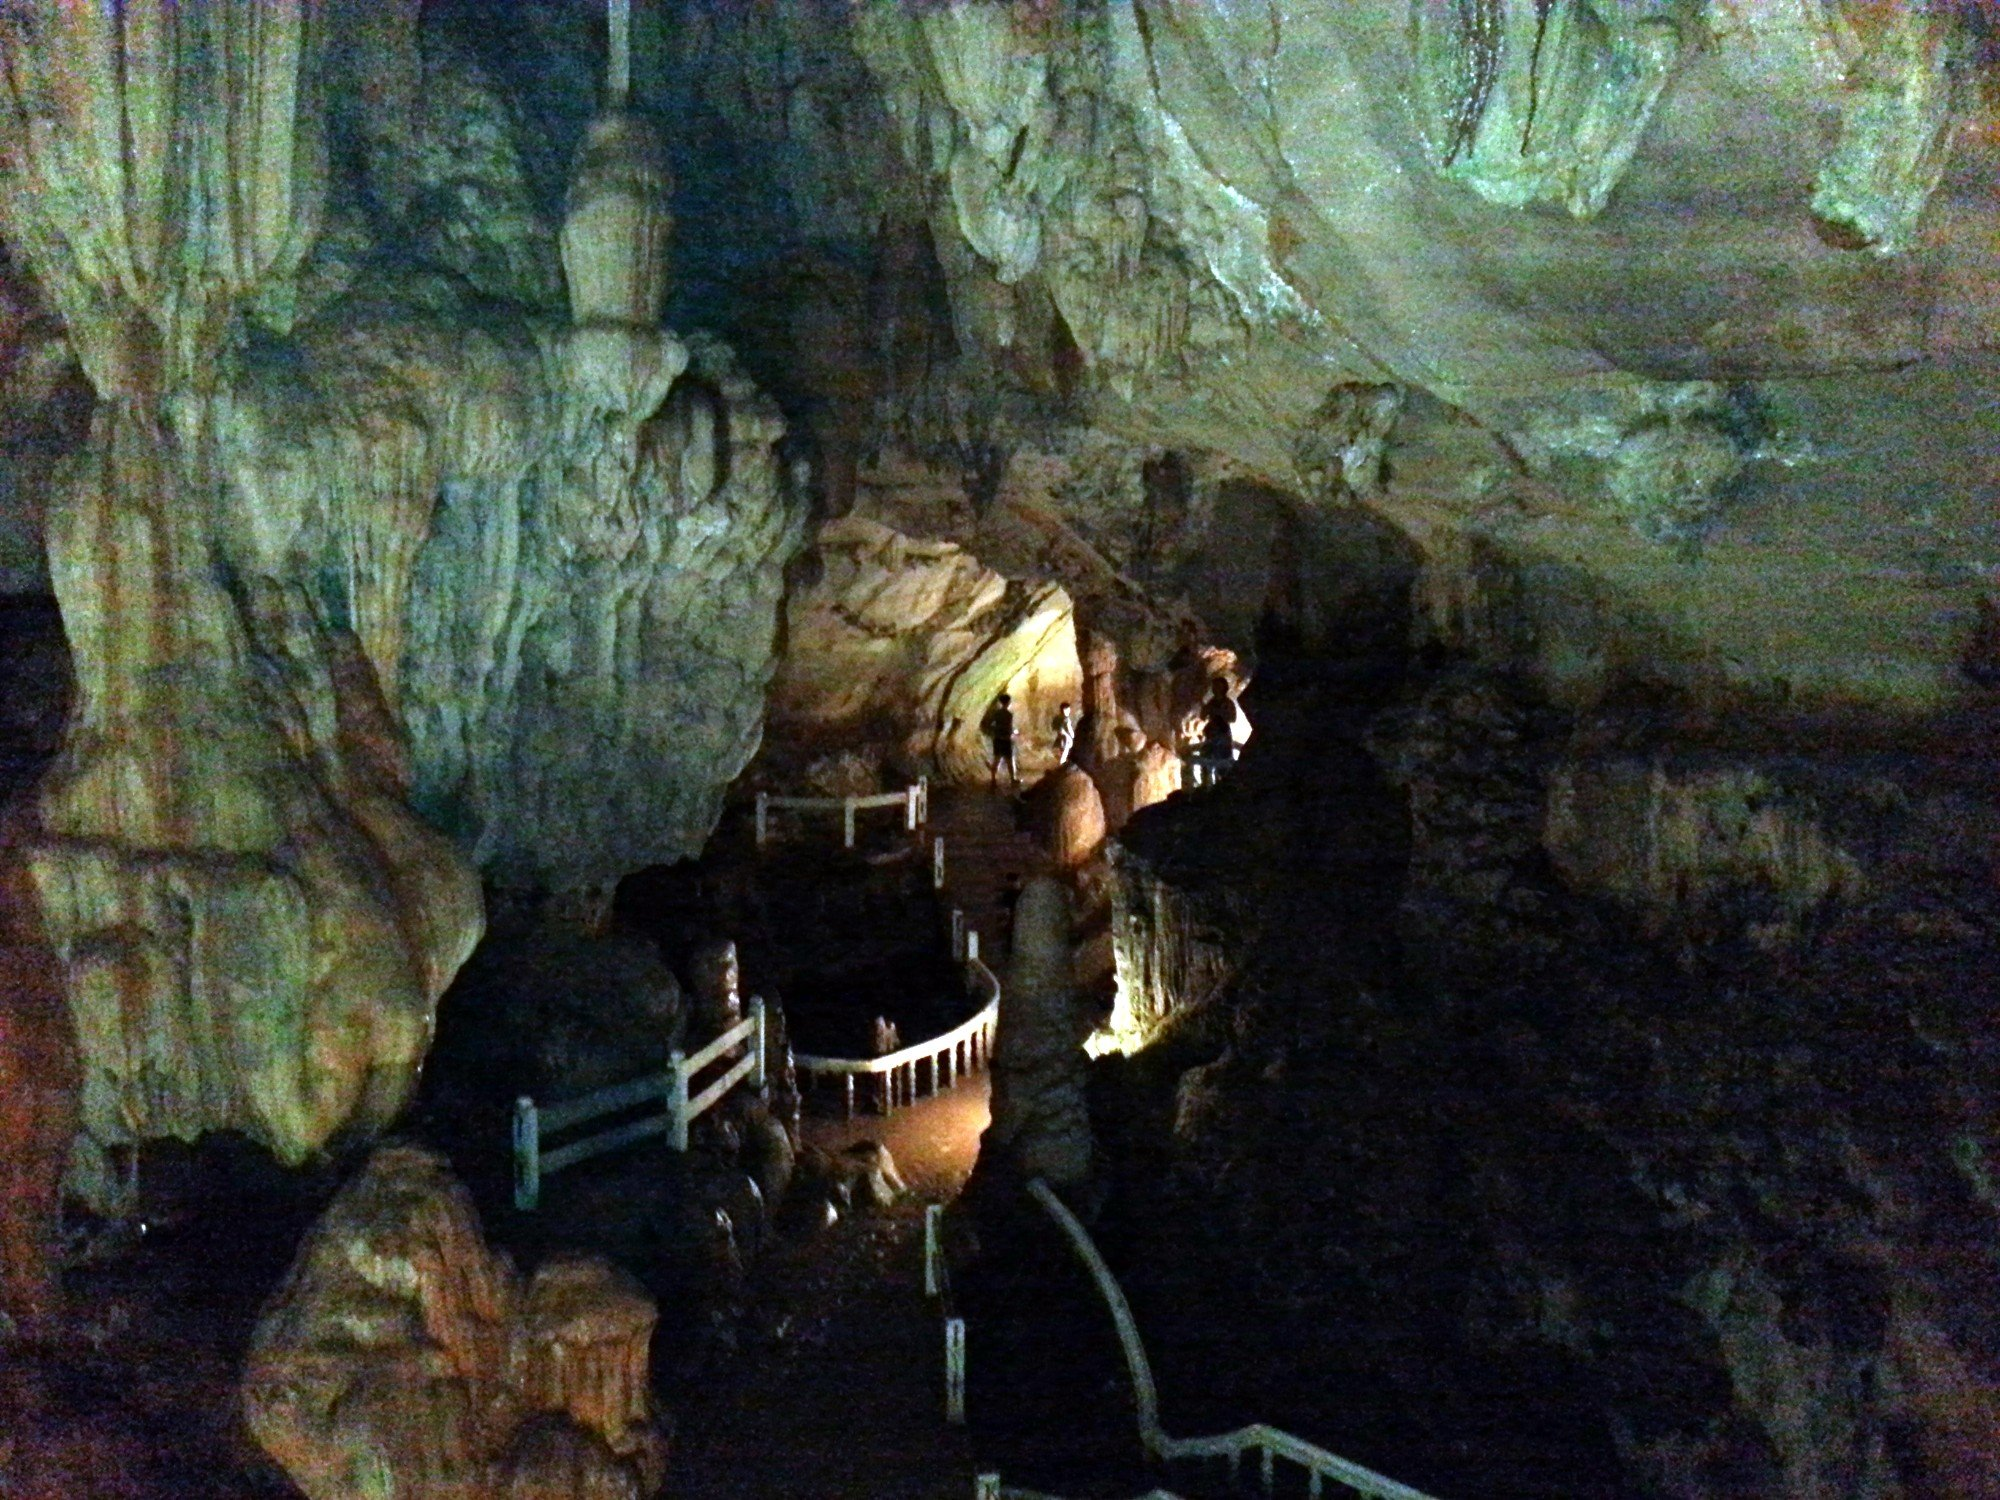 Tham Chang Cave in Vang Vieng